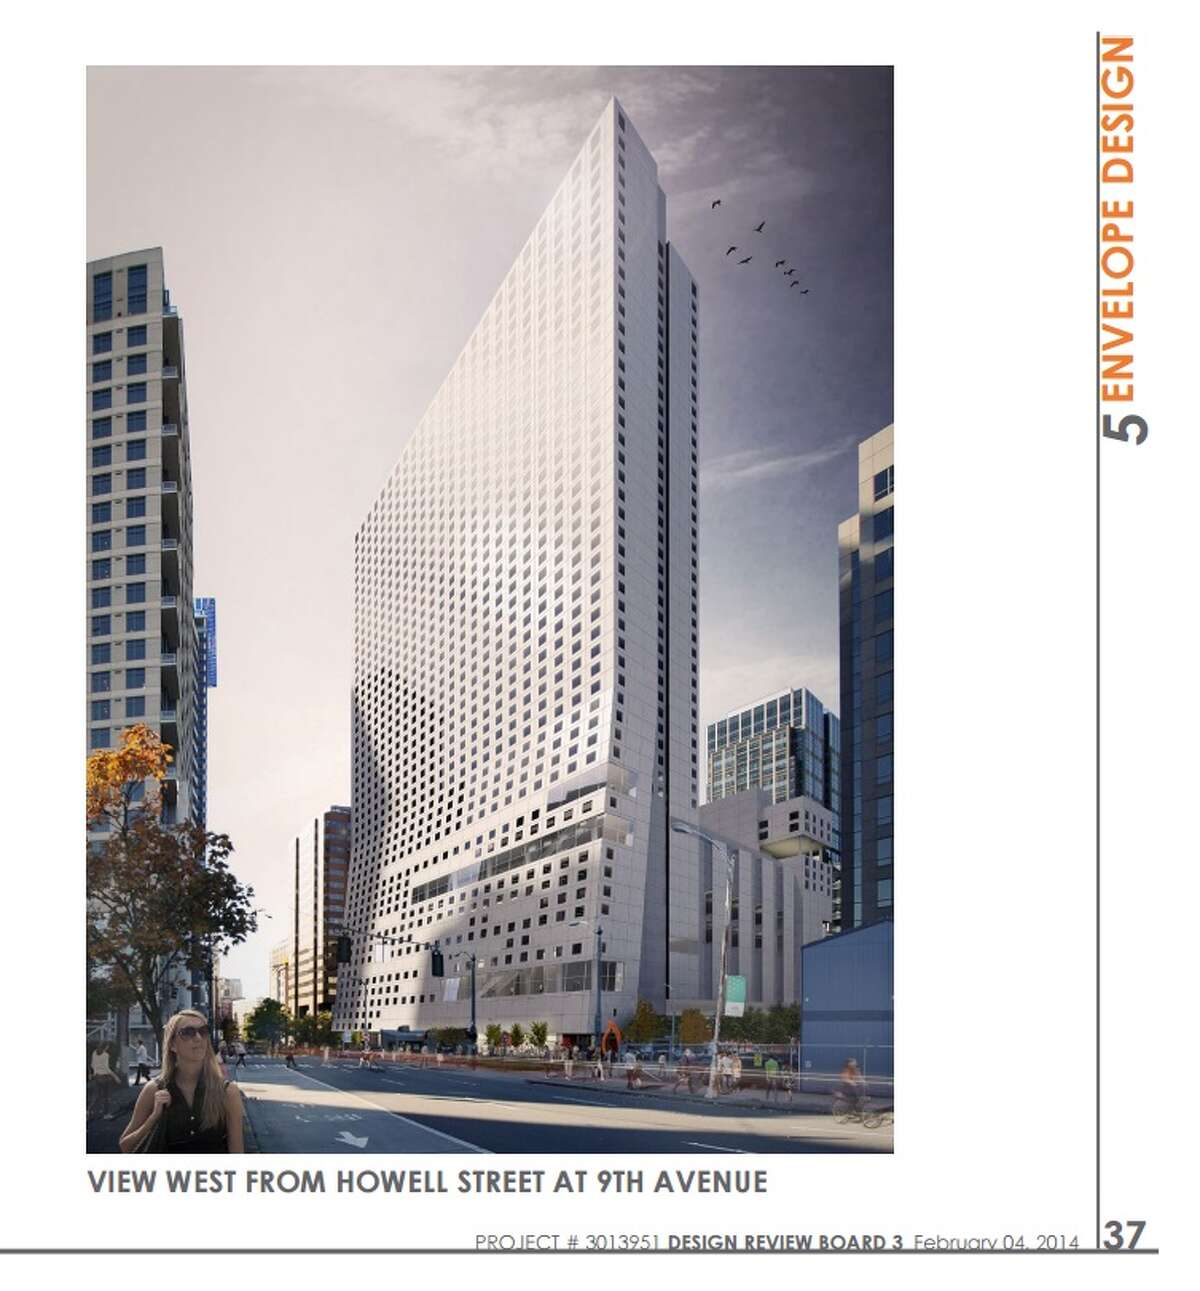 807 Stewart St. This site is planned for a 41-story hotel that will include underground parking for 700 vehicles and 150 to 160 affordable housing units. A demolition permit for the existing structure was issued earlier this year.